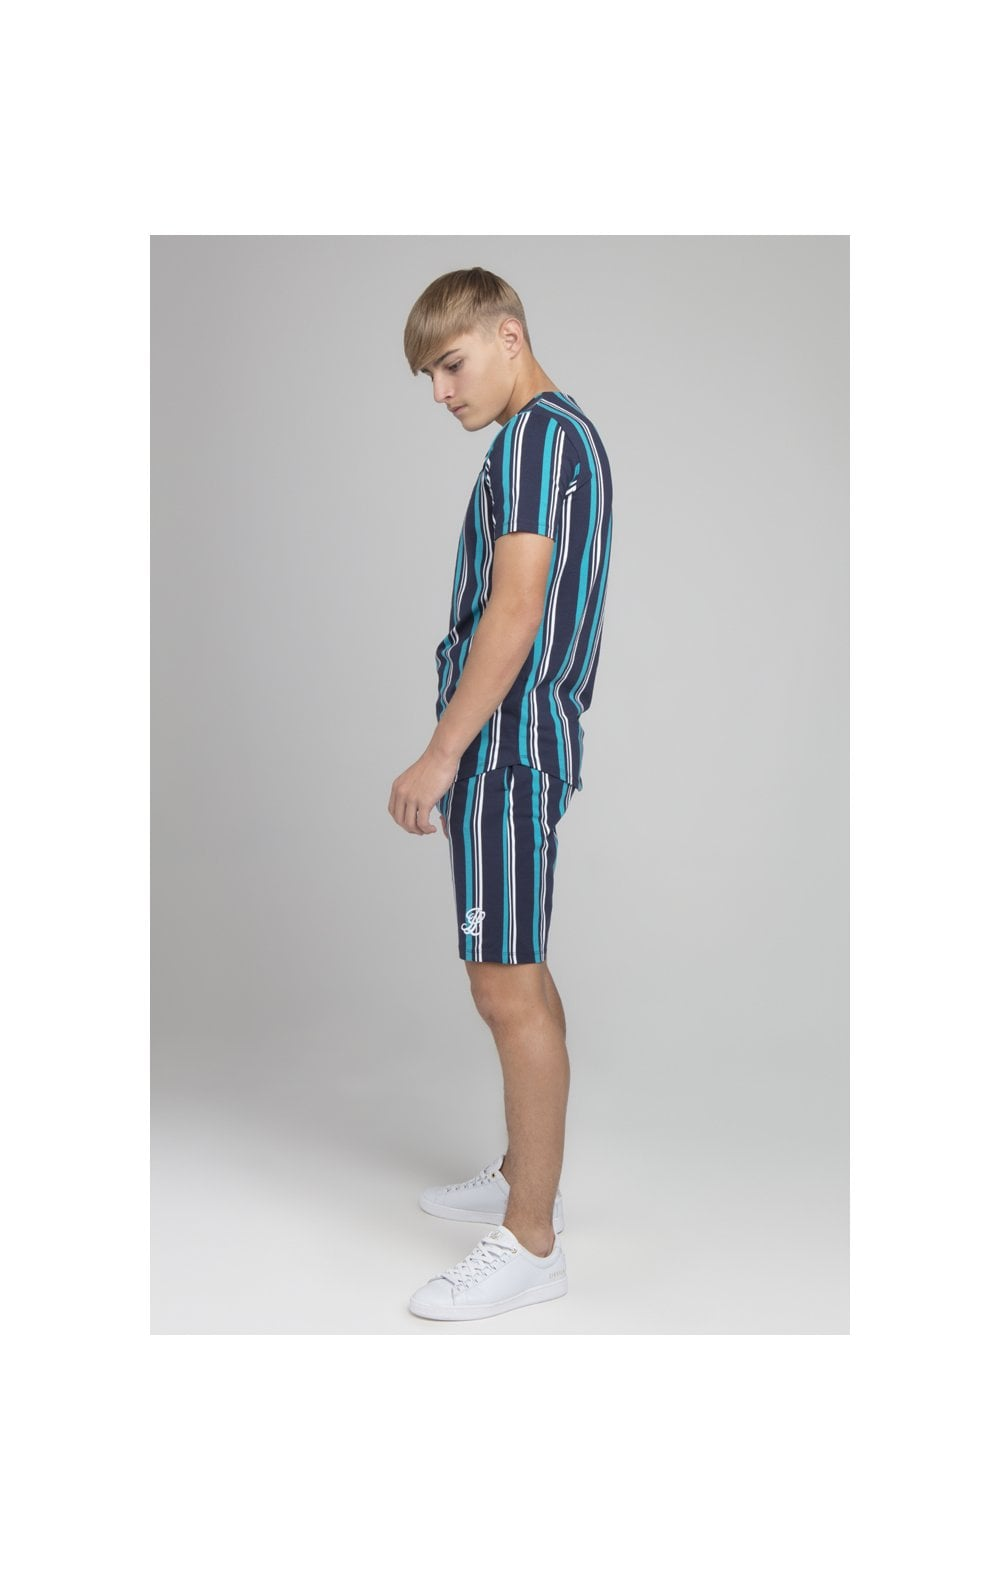 Illusive London Stripe Shorts - Navy & Teal (5)